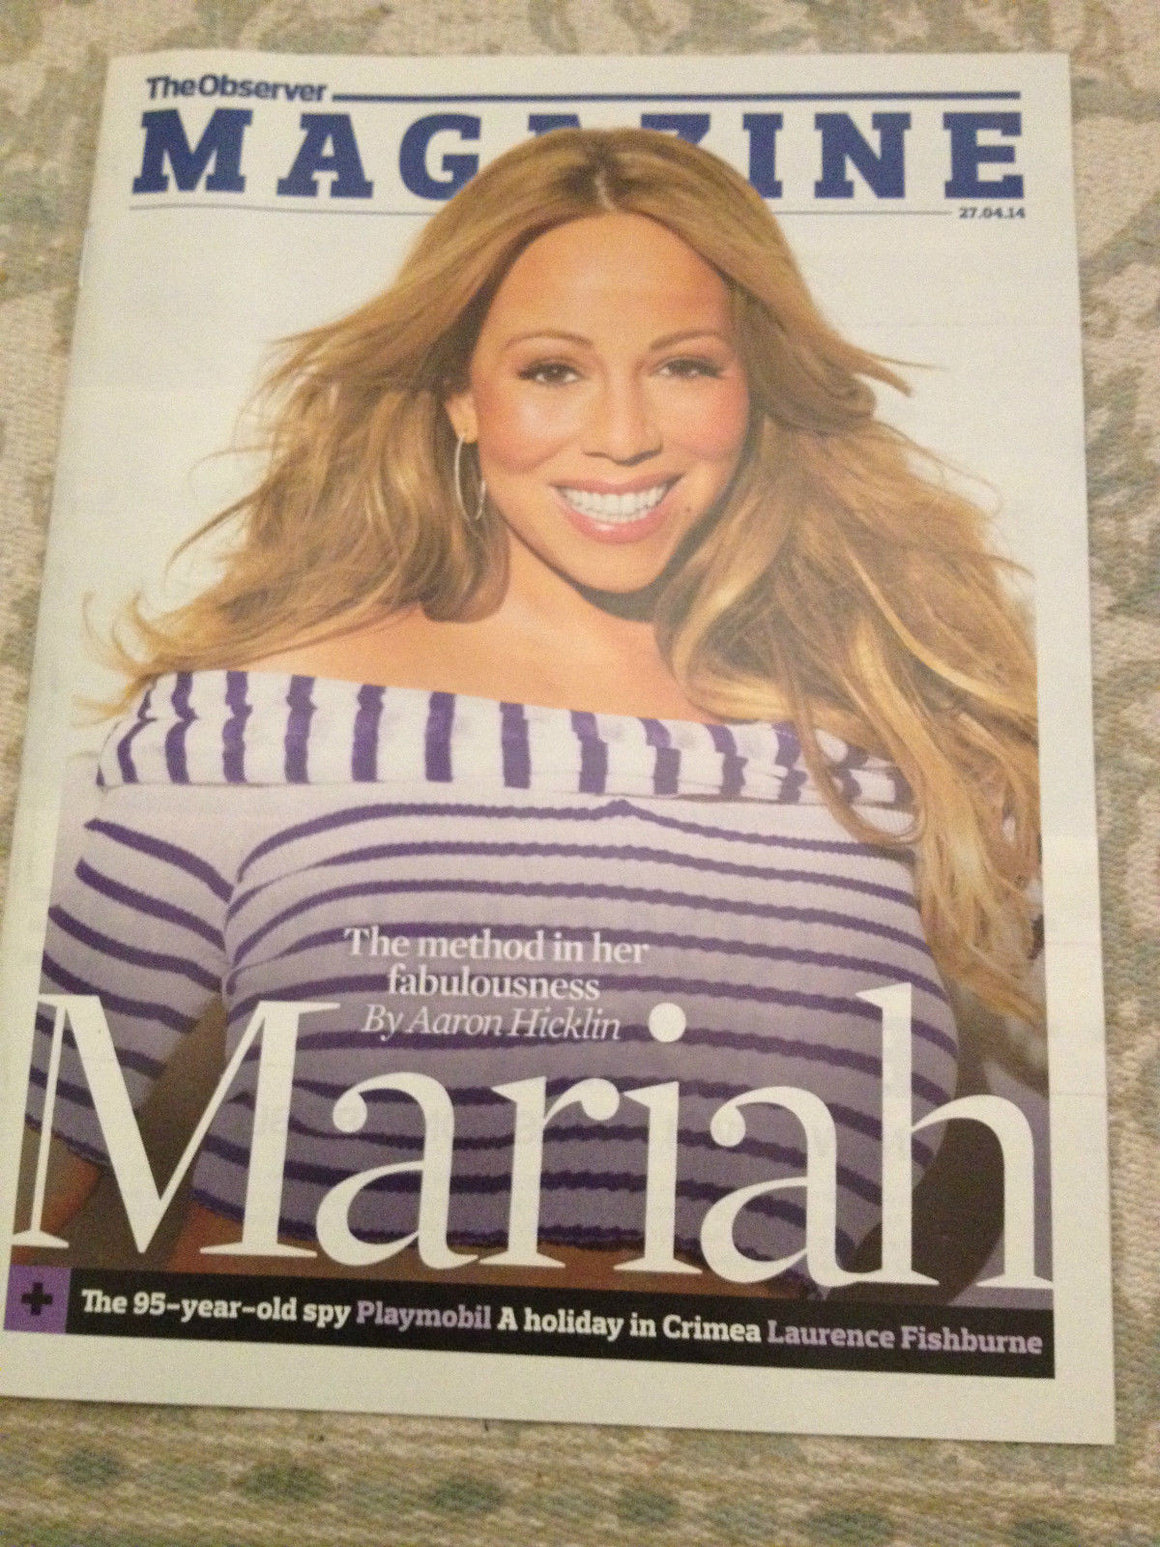 UK Mariah Carey Observer Magazine Cover April 2014 The Art Of Letting Go Promo